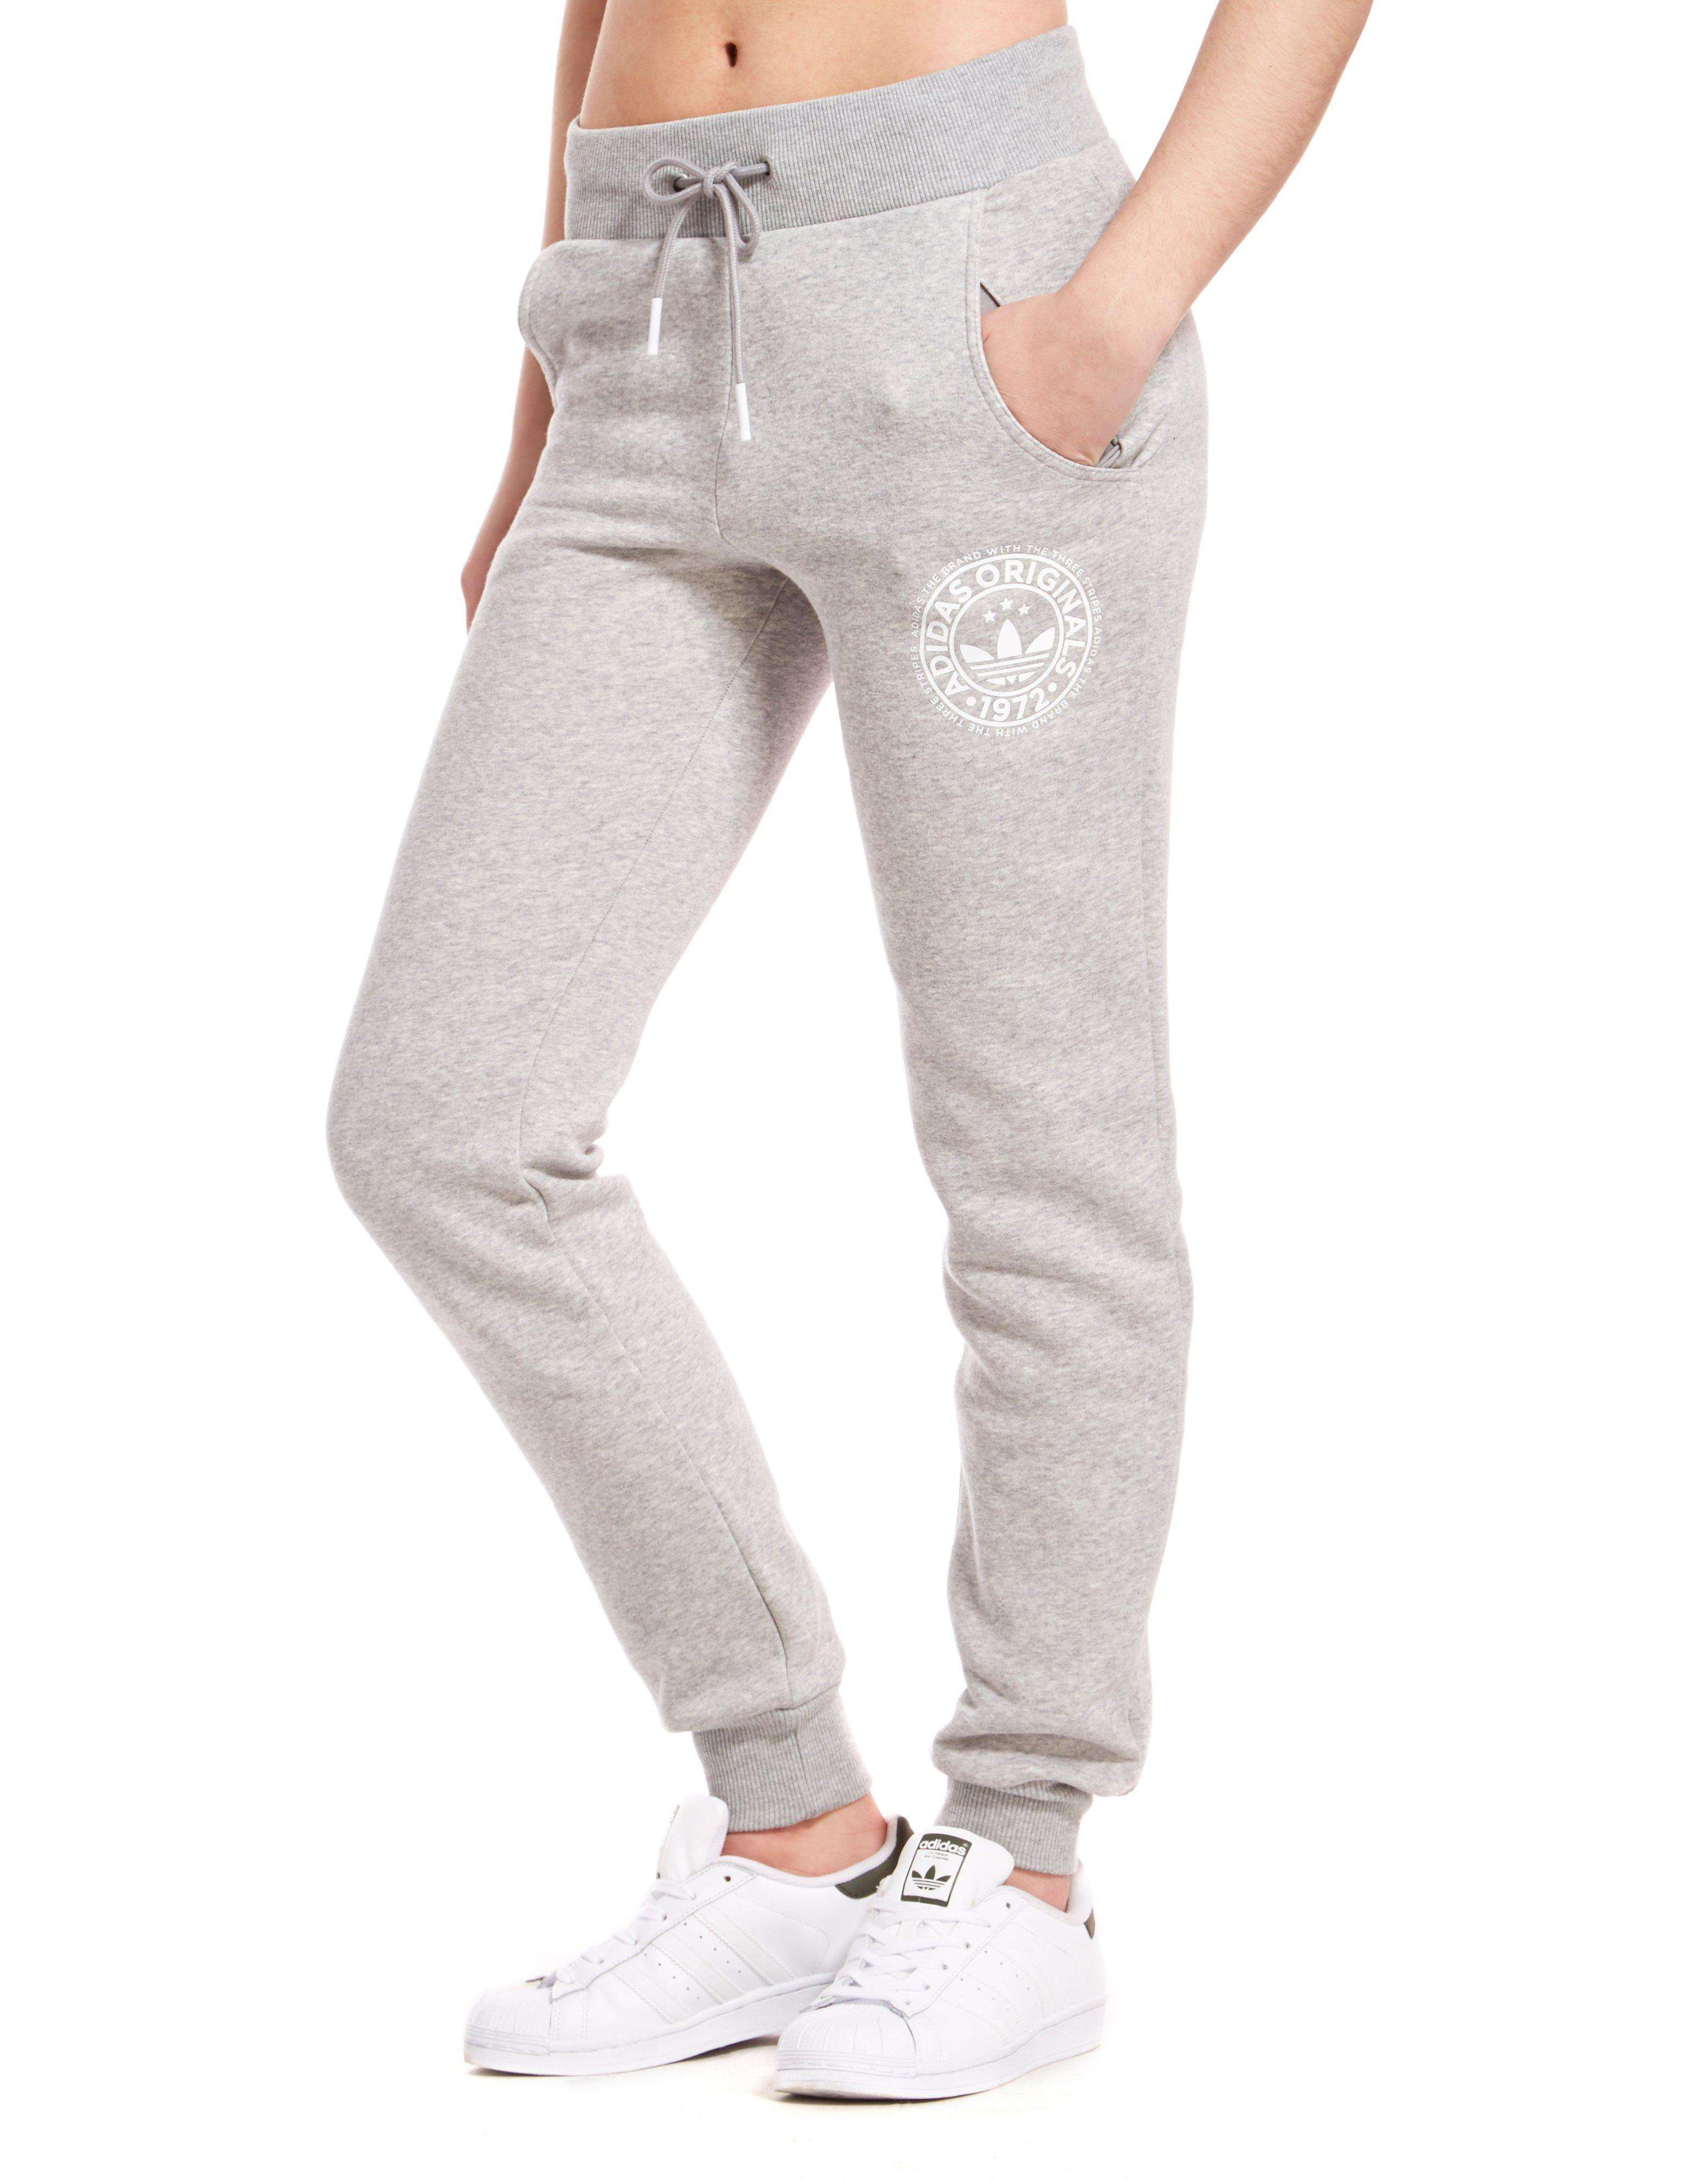 New Towngirl Grey Track Pants For Women Available At SnapDeal For Rs379